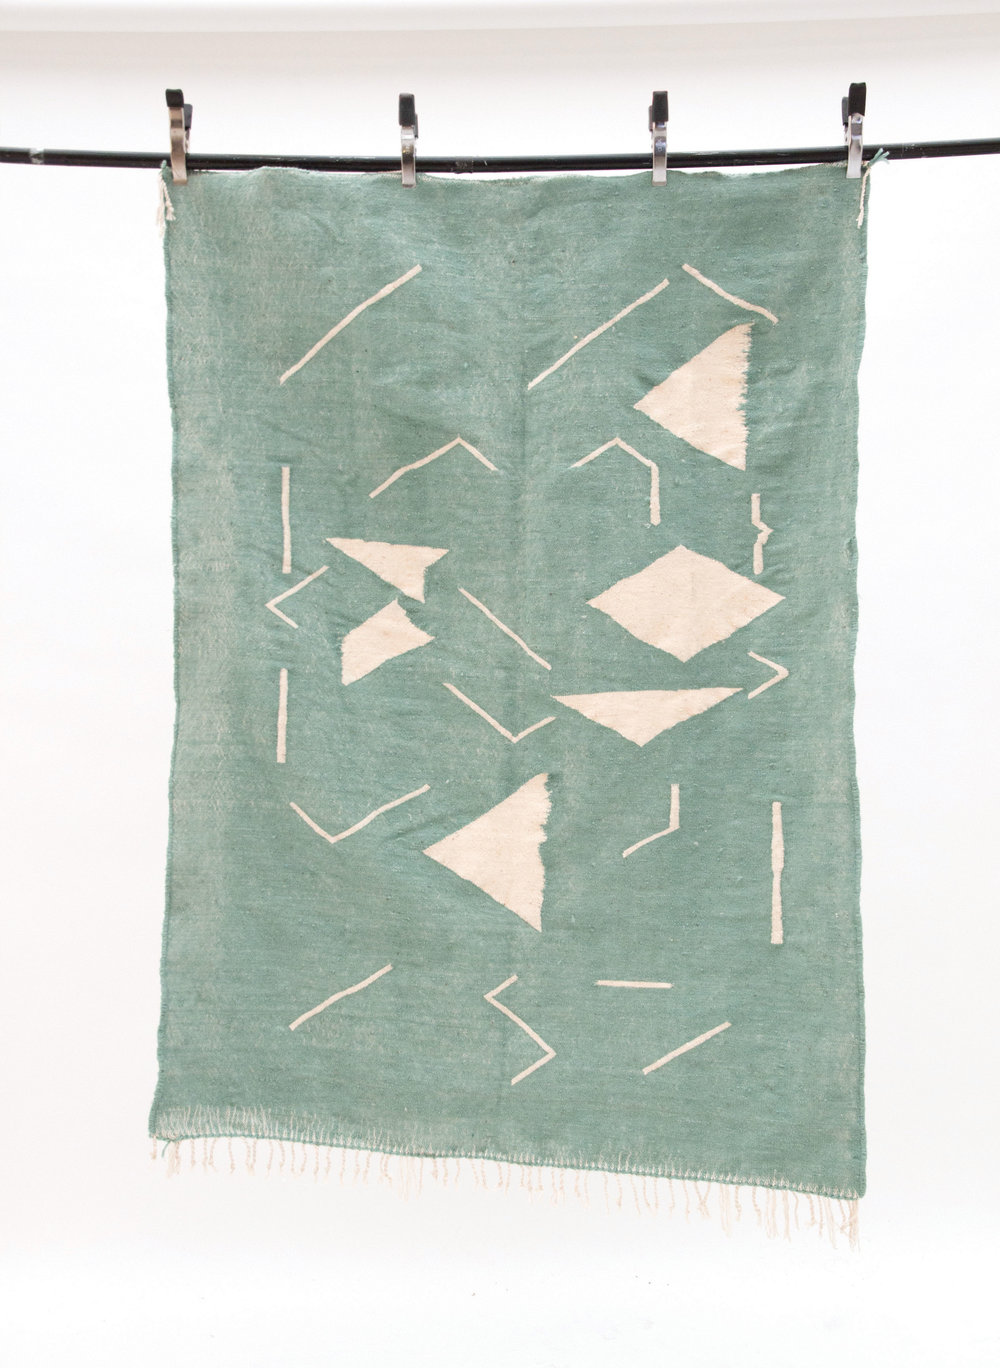 Contemporary rugs created by the Moroccan weavers, during the 'Common Thread' residency